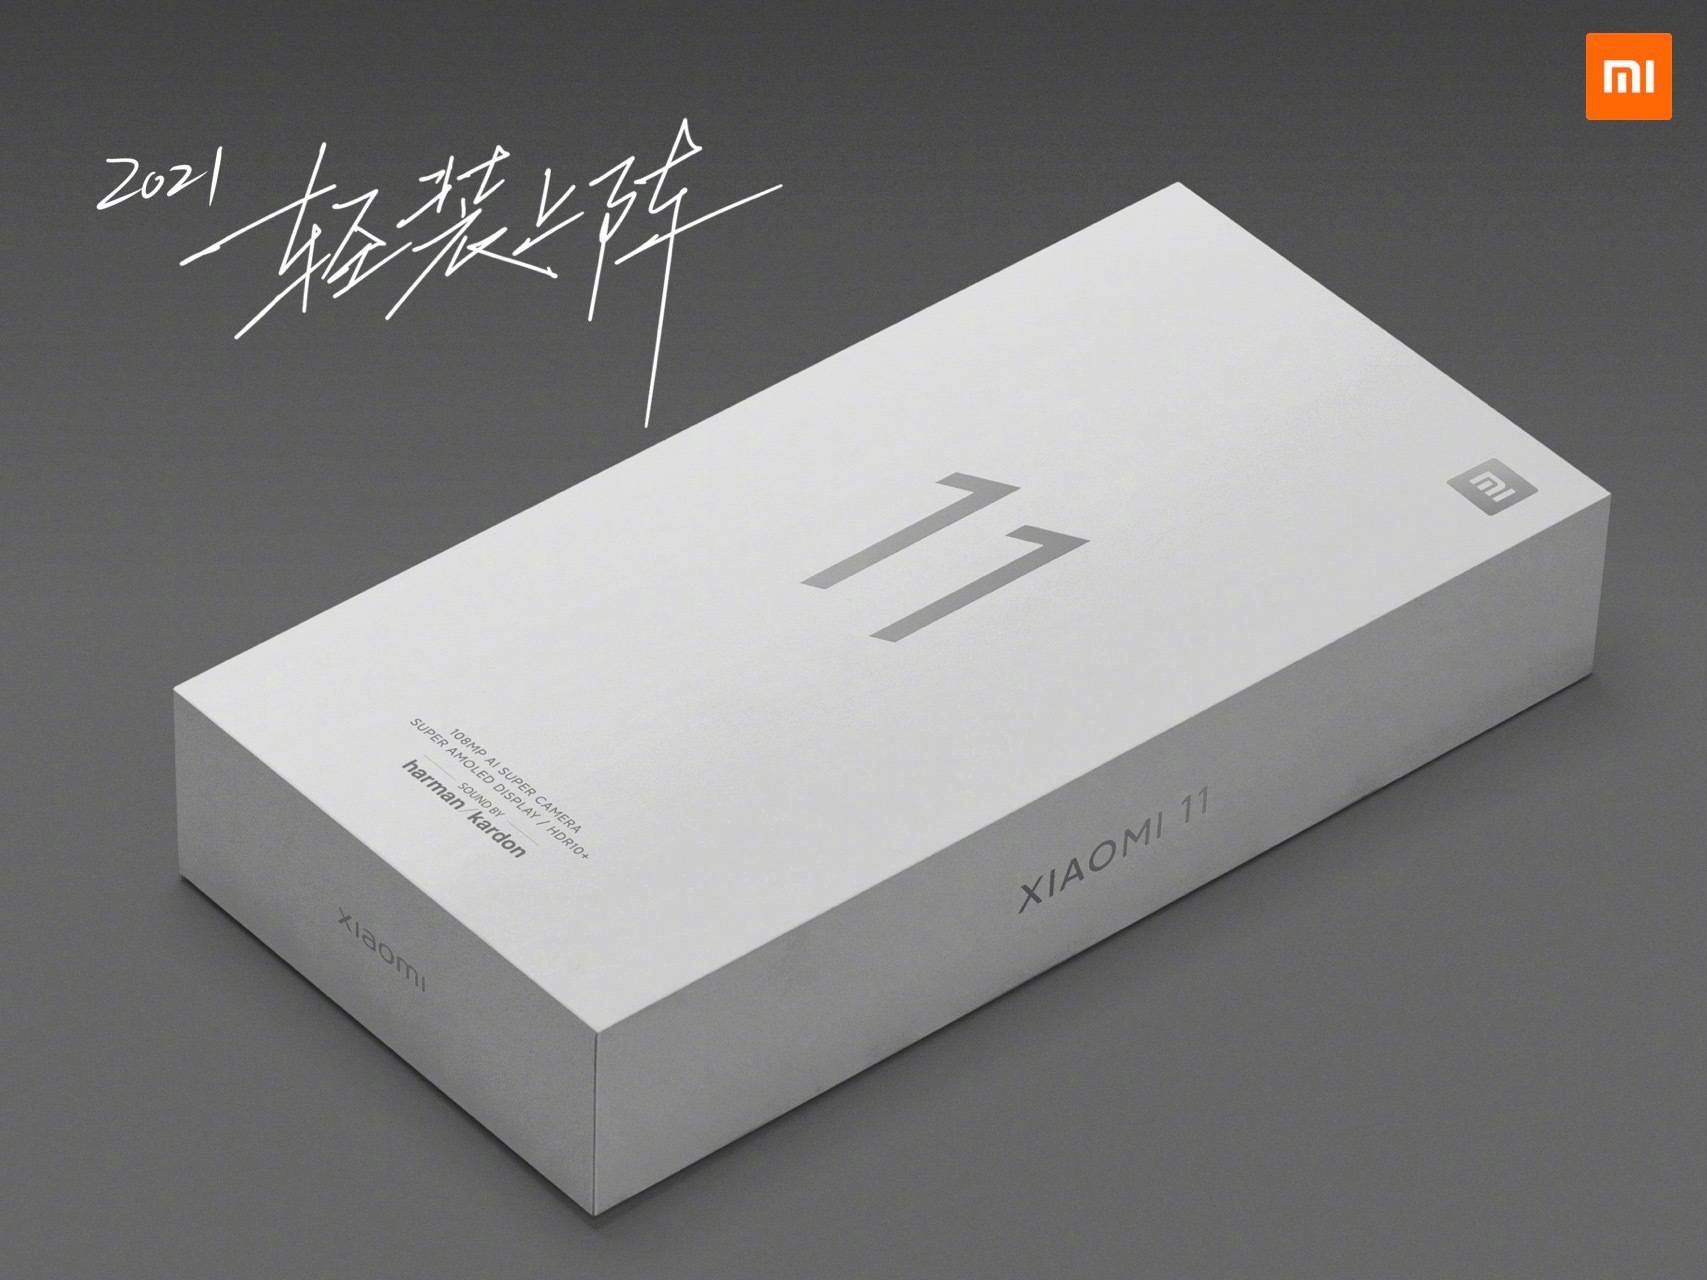 (Update: Officially confirmed) Xiaomi Mi 11 series likely to ship without in-box charger